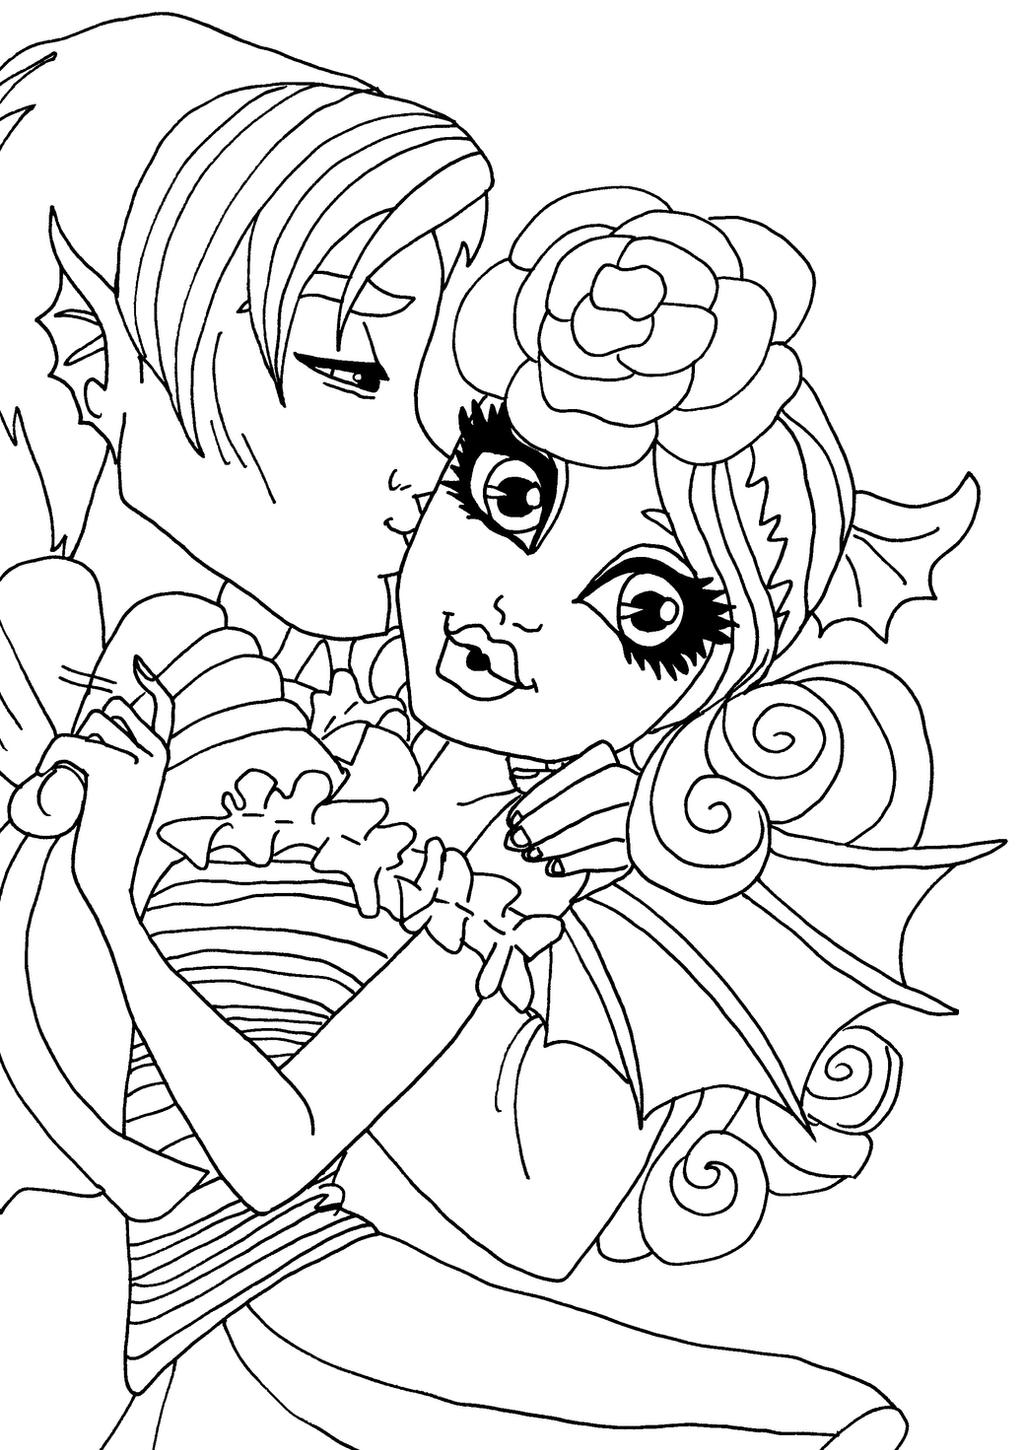 elfkena 6 0 rochelle and garrott - Monster High Coloring Pages Cupid